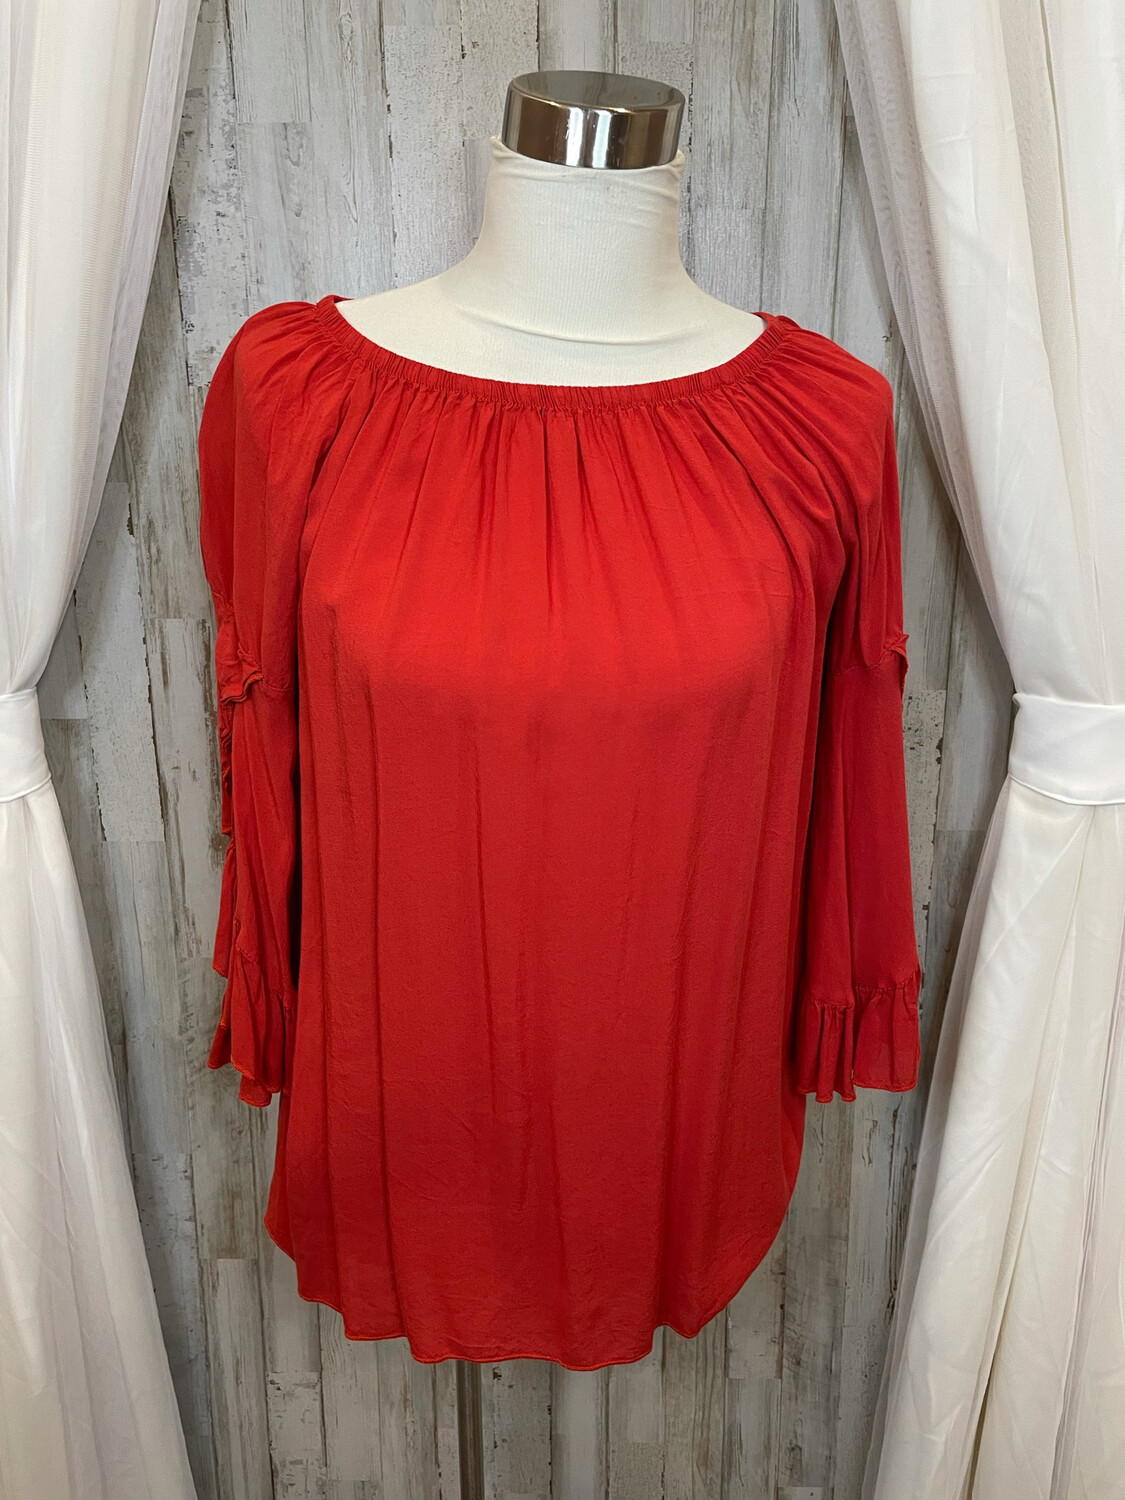 Entro Red Ruffle Sleeve Off Shoulder Top - S